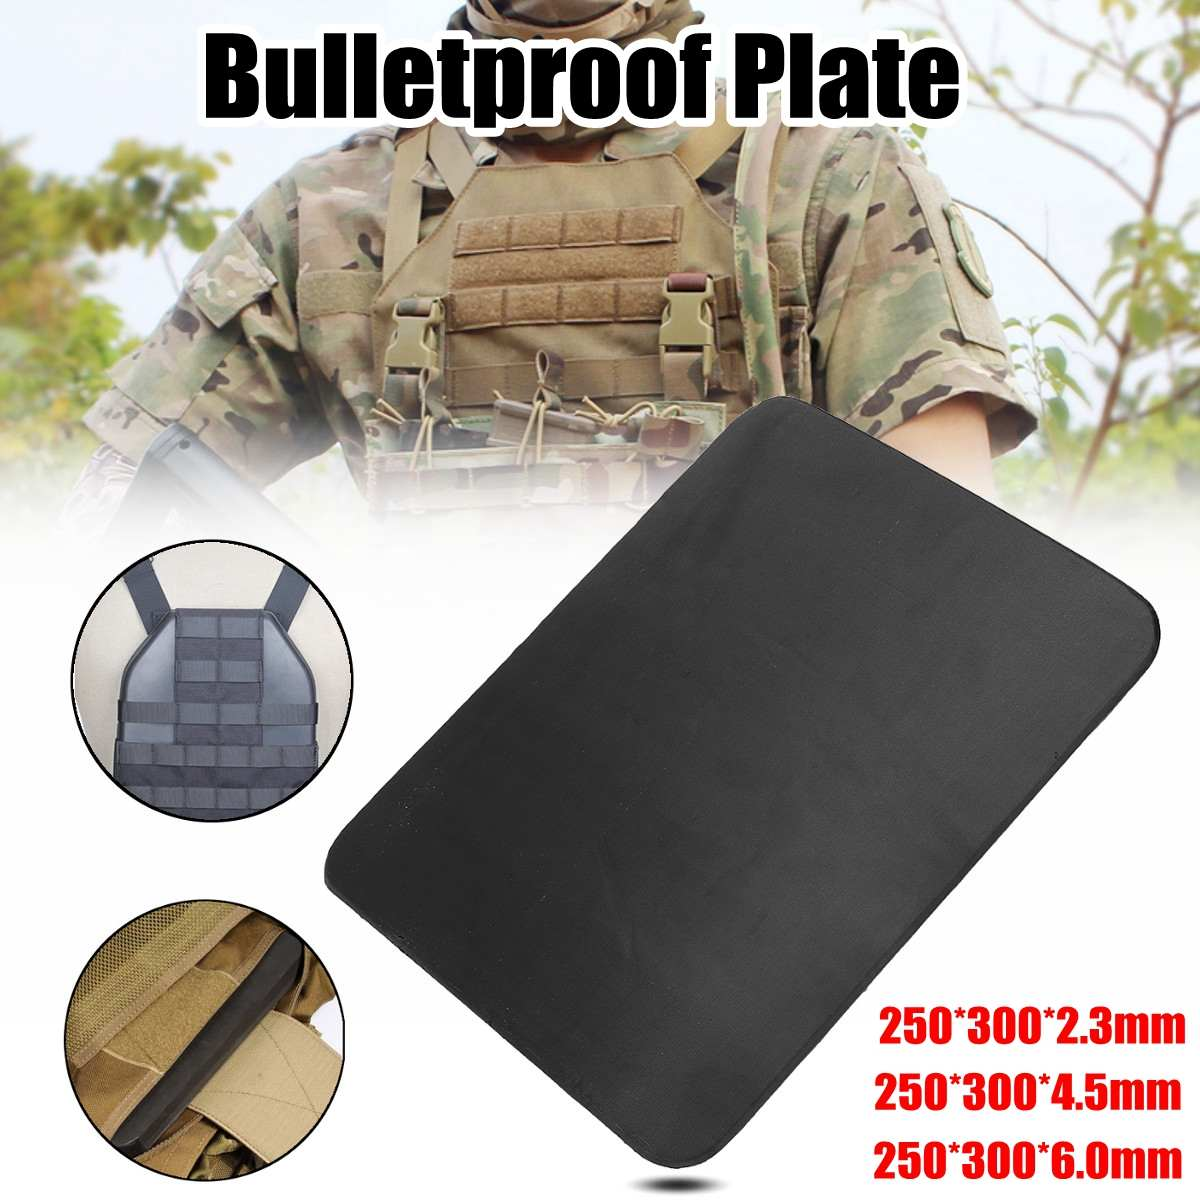 2.3mm Anti Ballistic Bulletproof IIIA Stand Alone Body Armour Alloy Steel Plate